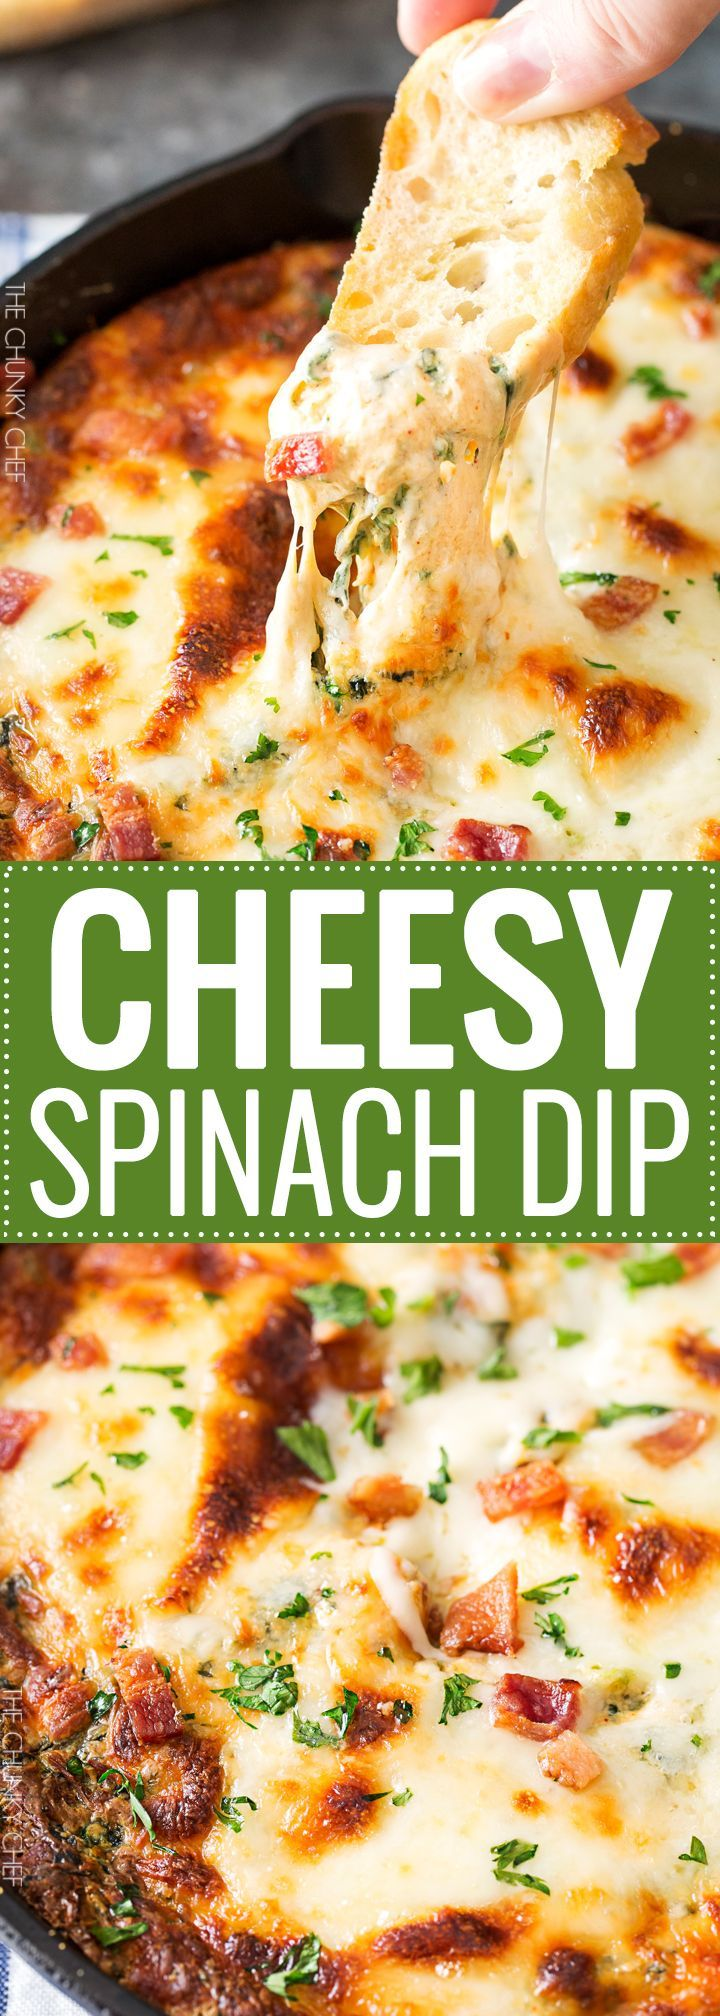 Cheesy Bacon Spinach Dip | This party spinach dip is loaded with tons of spinach, gooey cheese, crispy bacon and other mouthwatering flavors. Combine, bake, and eat! Perfect for a party! | http://thechunkychef.com